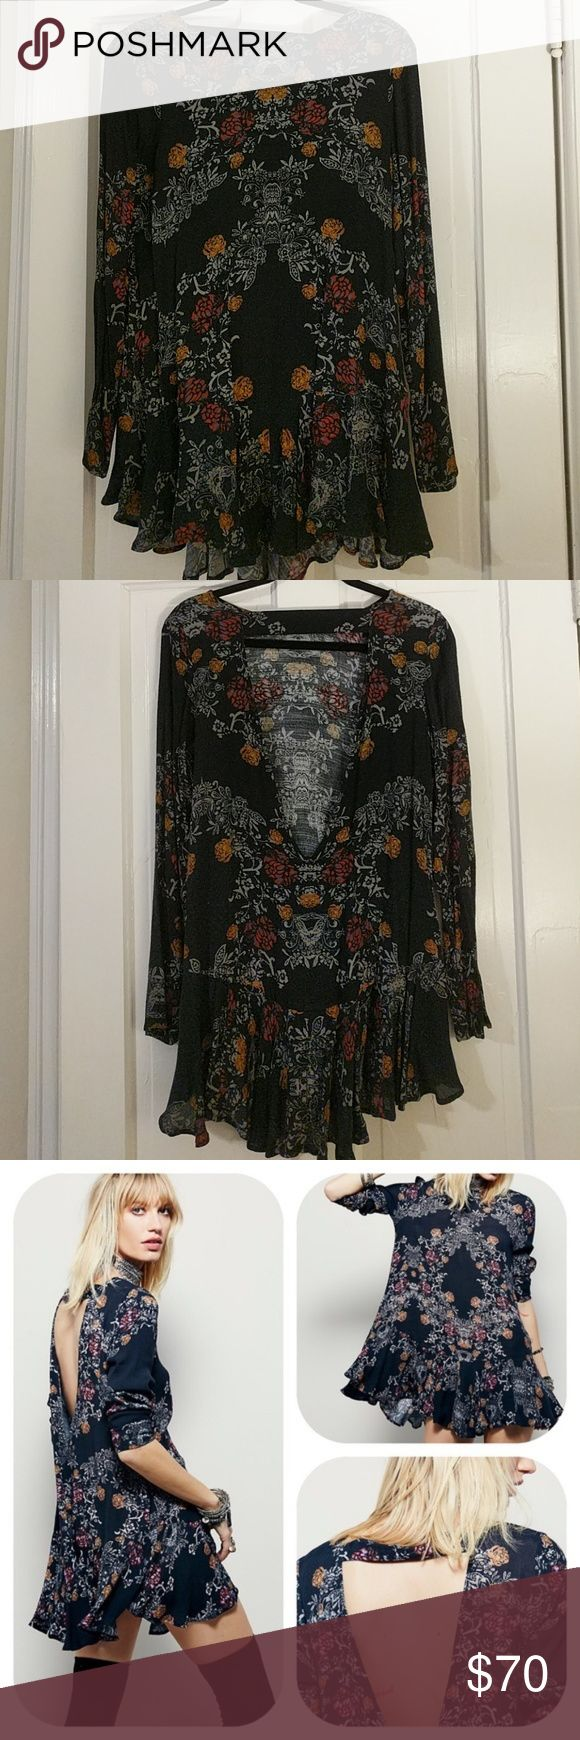 Free People Smooth Talker Tunic Dress Smooth Talker floral tunic dress in Raven. Open v back with strap, ruffled hem. Worn once, perfect condition. Free People Dresses Mini